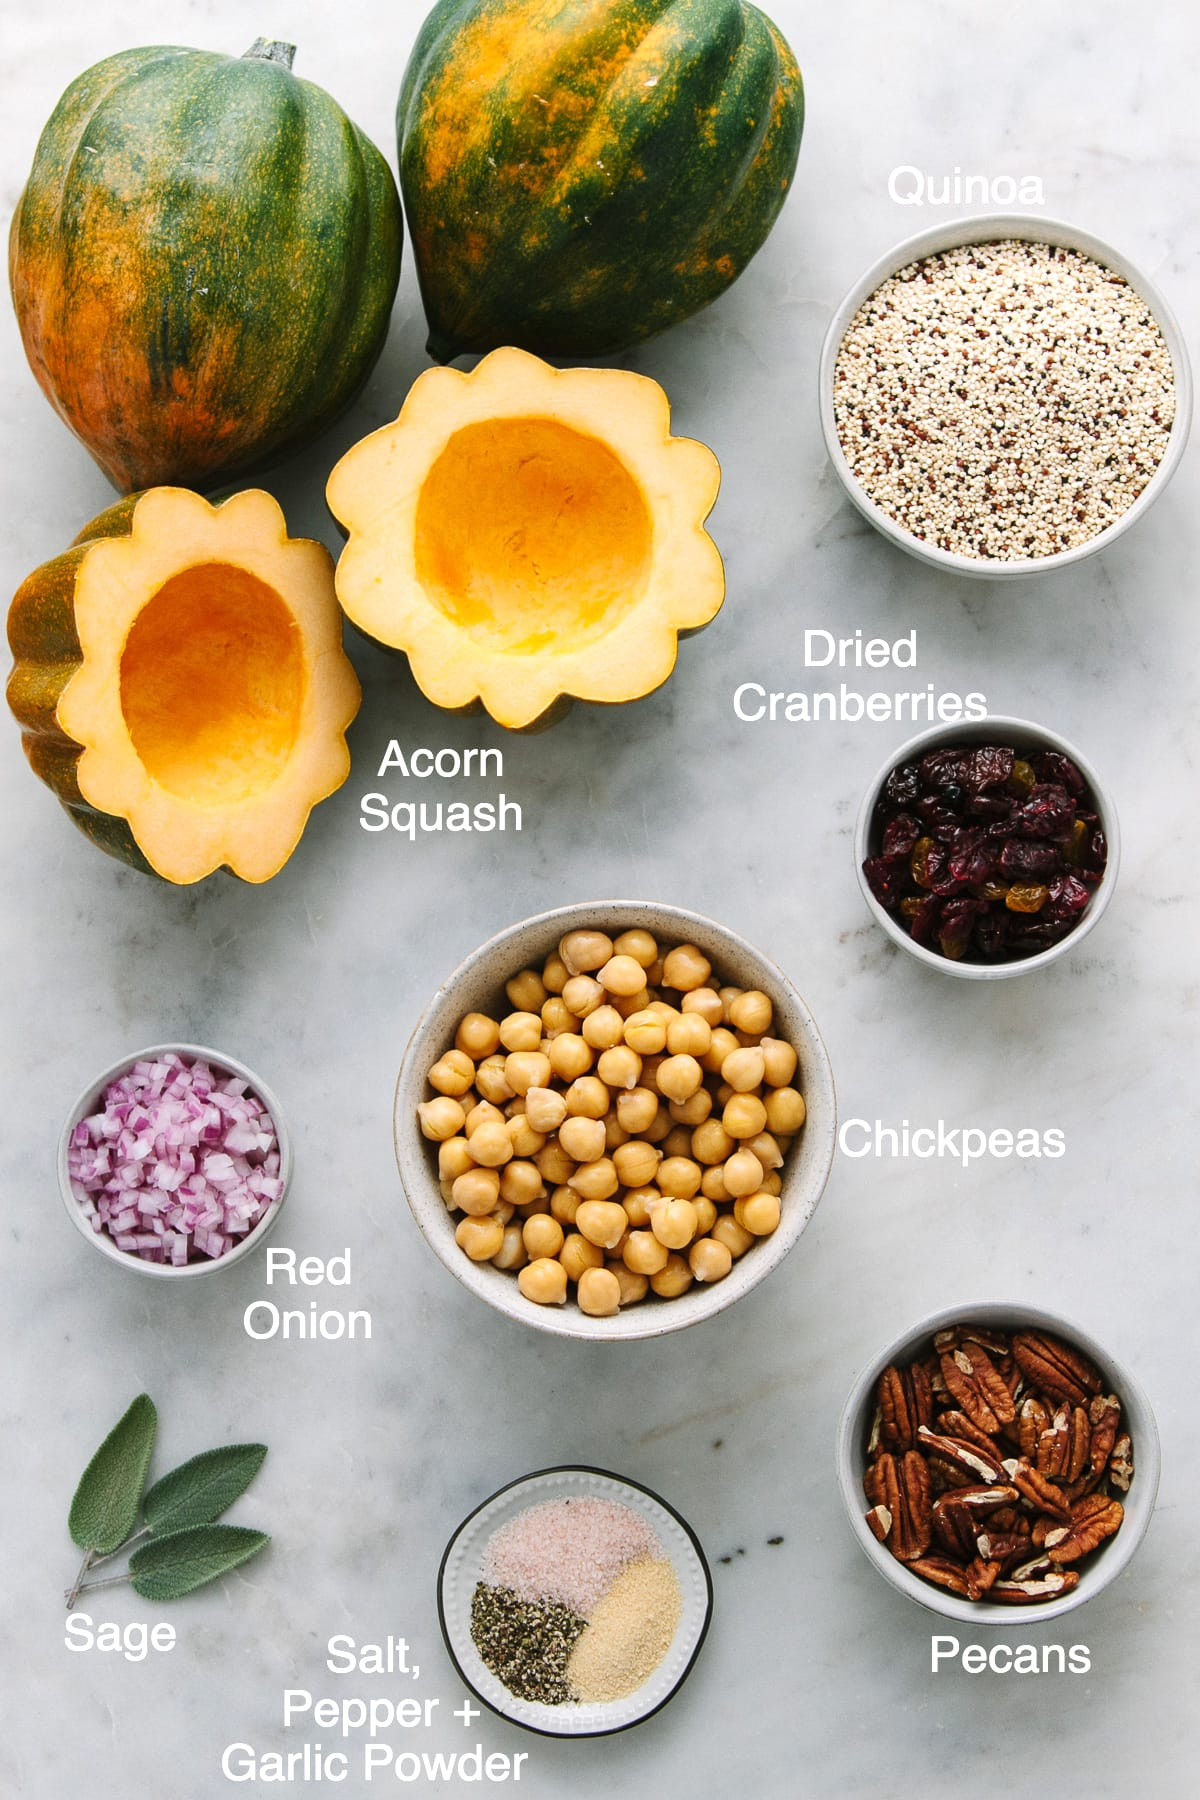 top down view of ingredients used to make acorn squash with quinoa, cranberry, pecans and chickpeas.